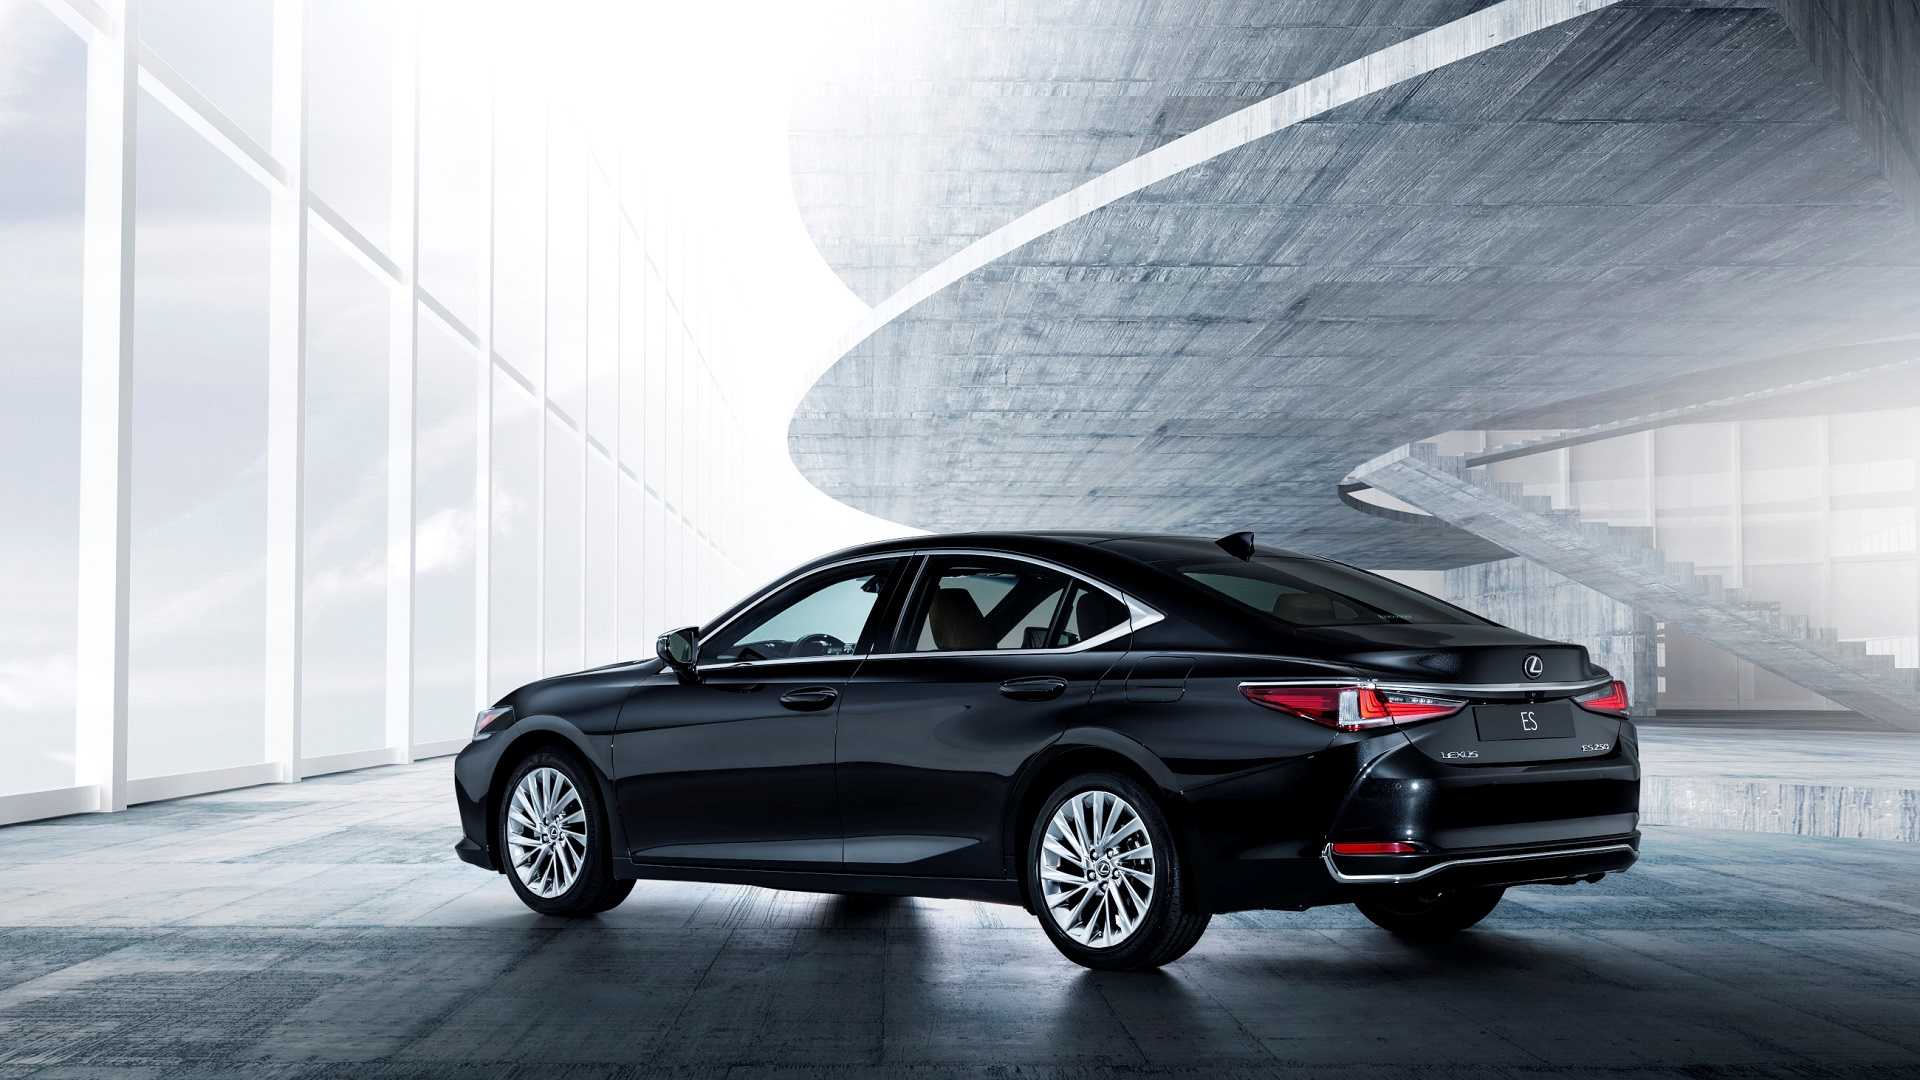 Lexus ES 300h Video Image